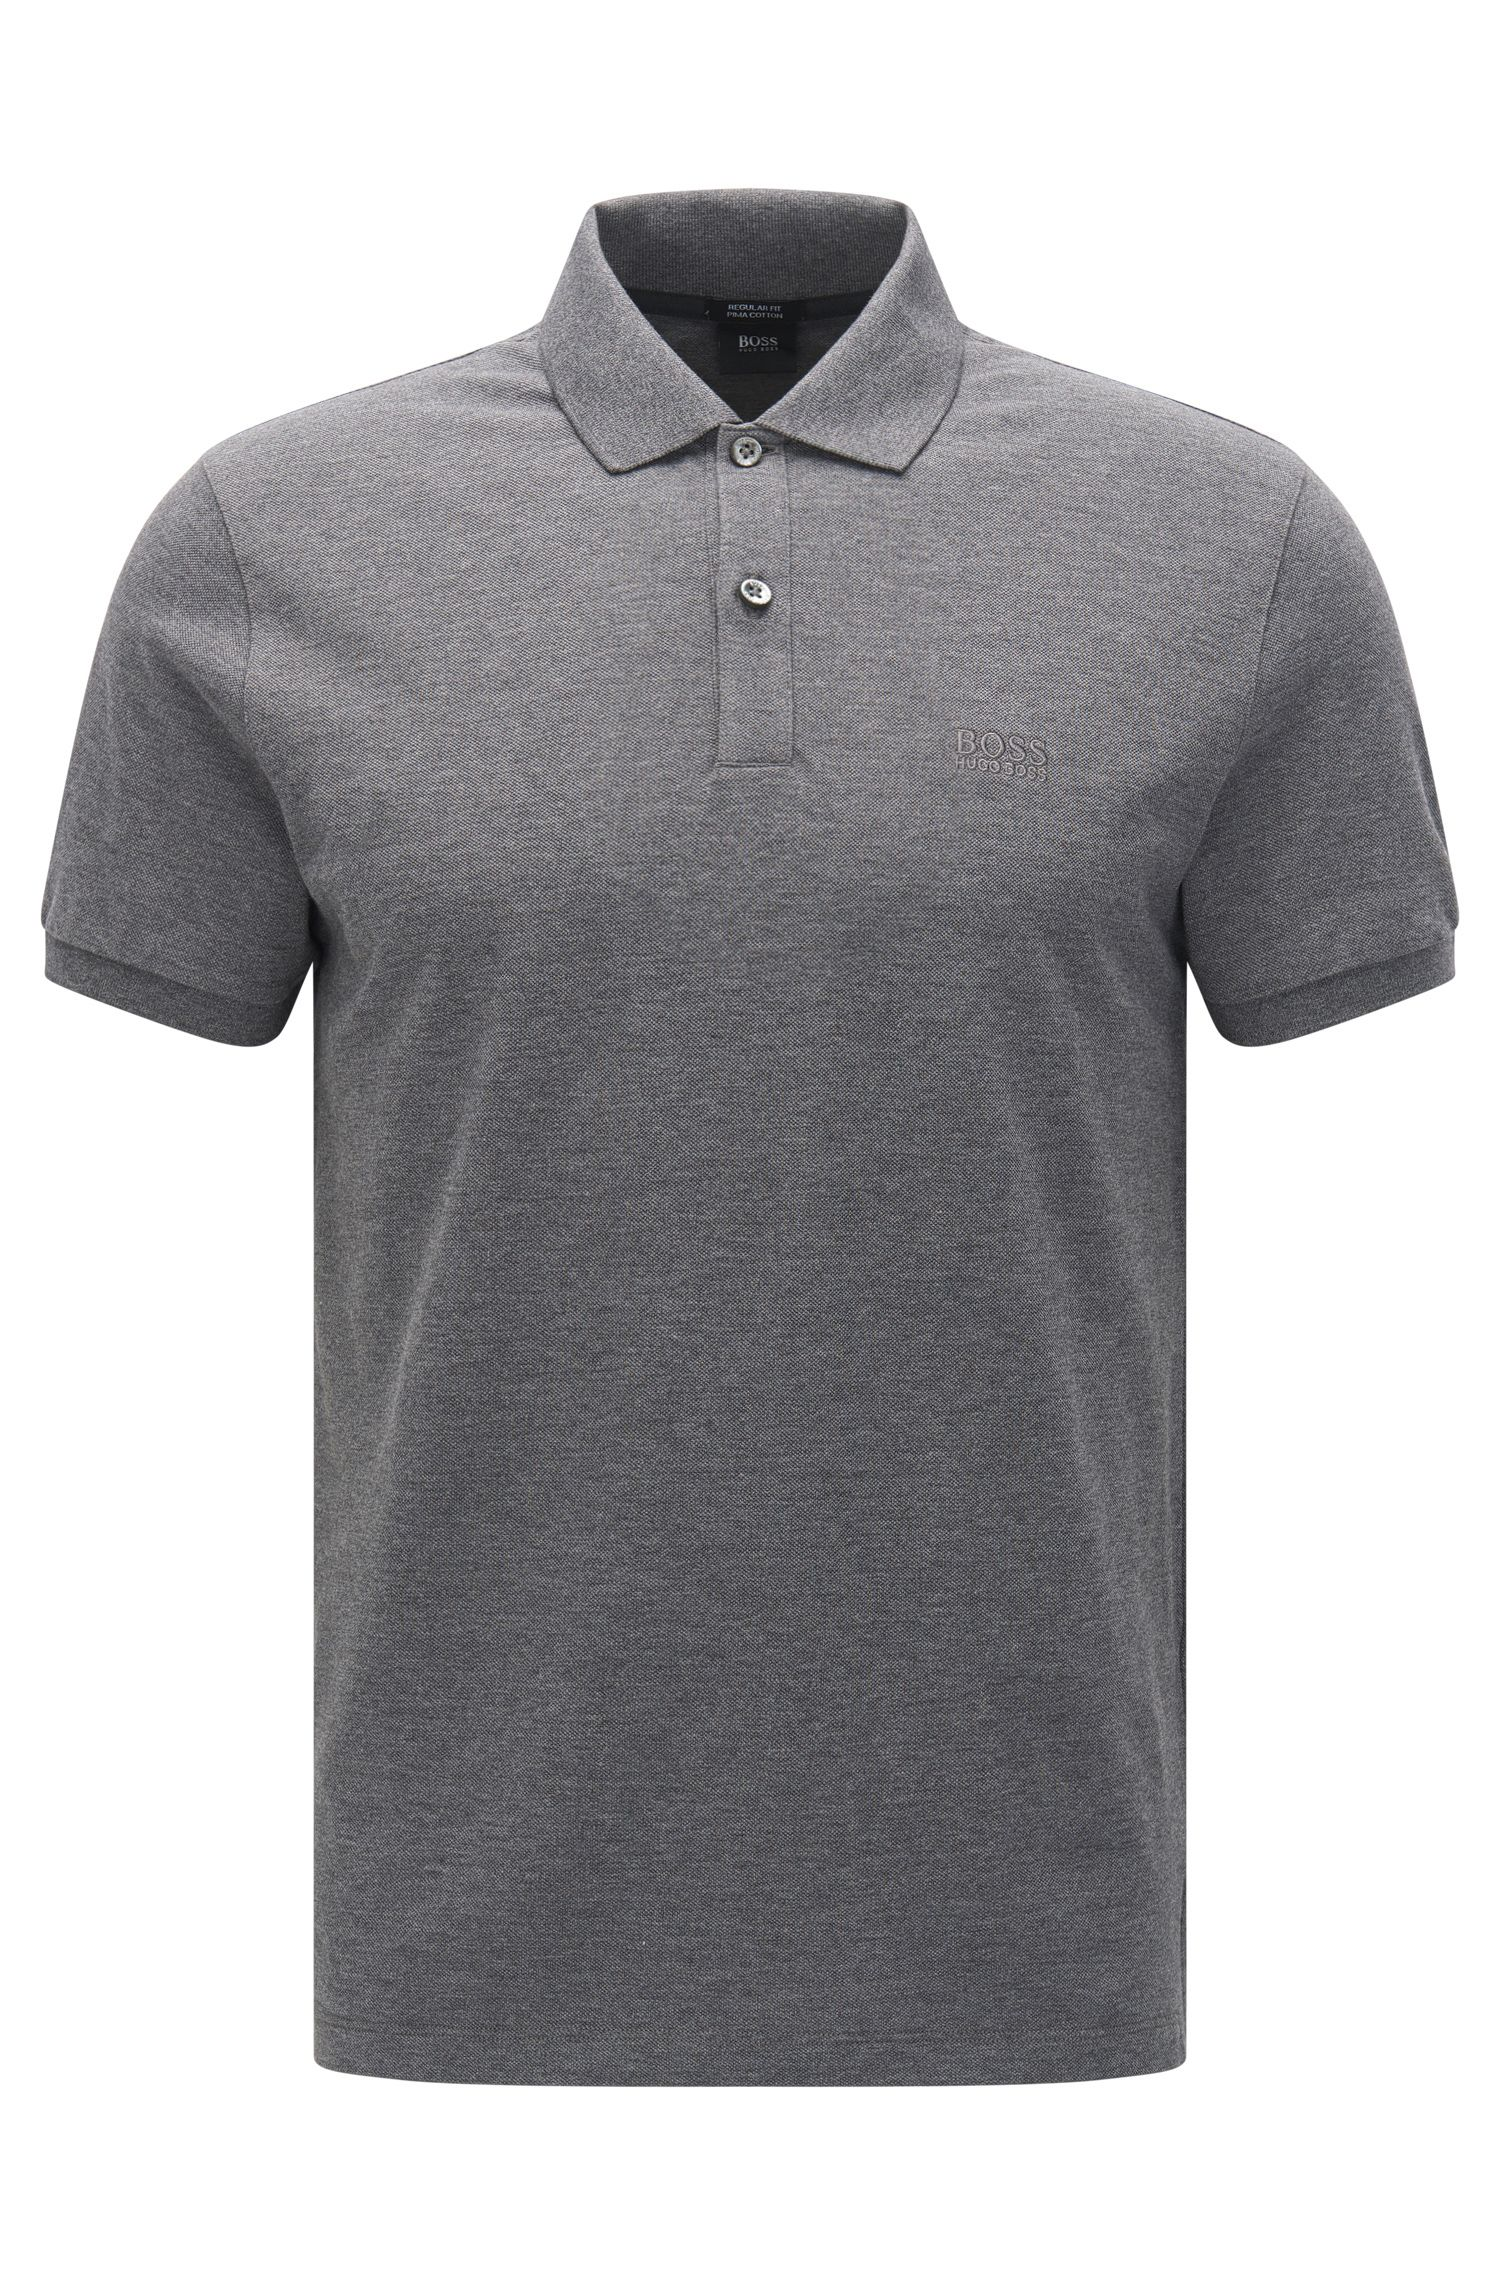 Regular-Fit Poloshirt aus Baumwolle: 'Pallas'